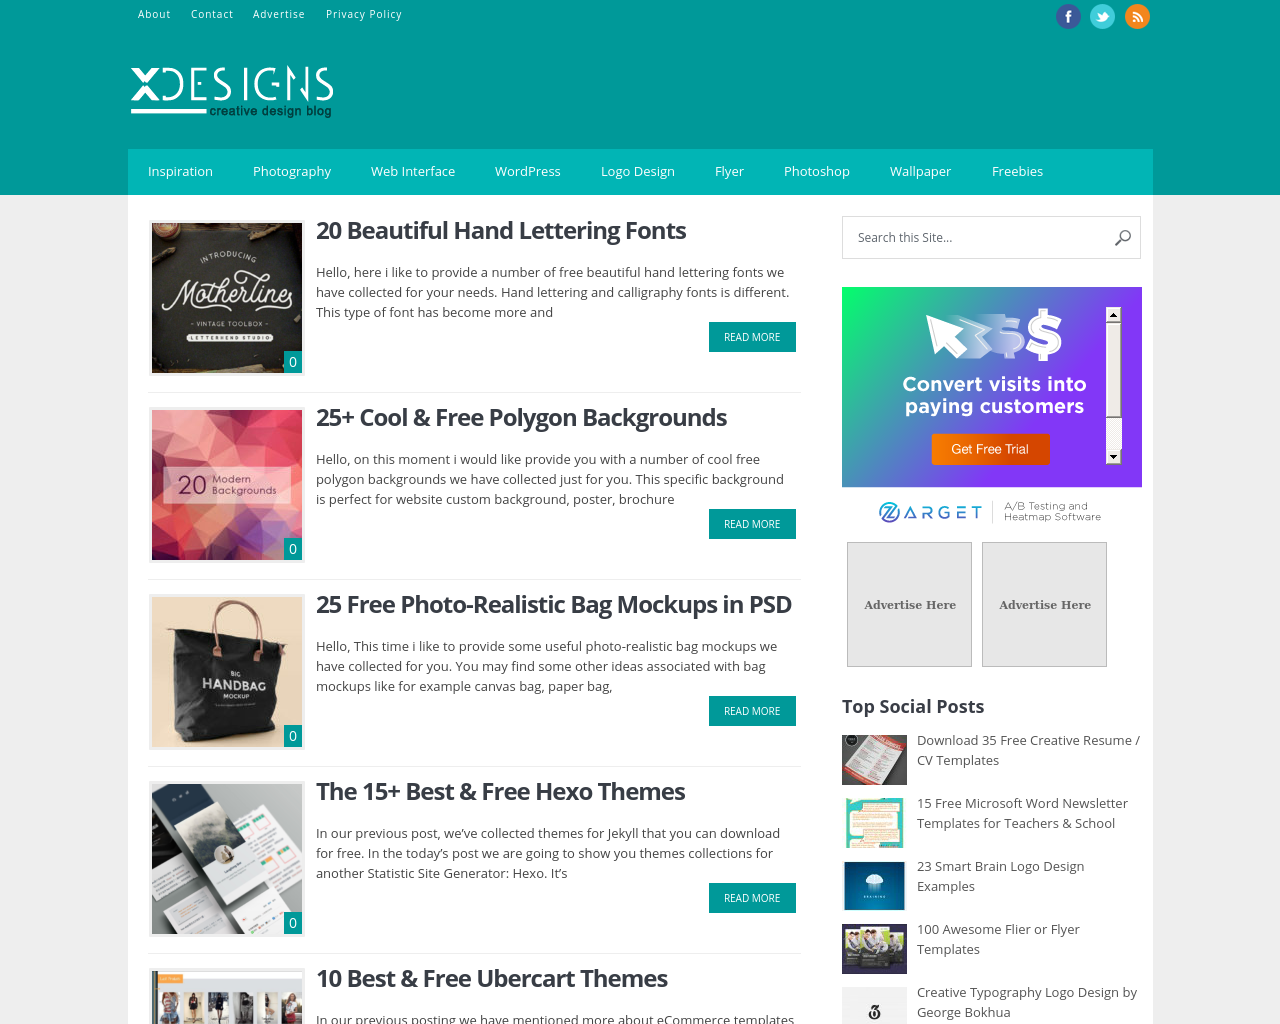 XDesigns-Advertising-Reviews-Pricing